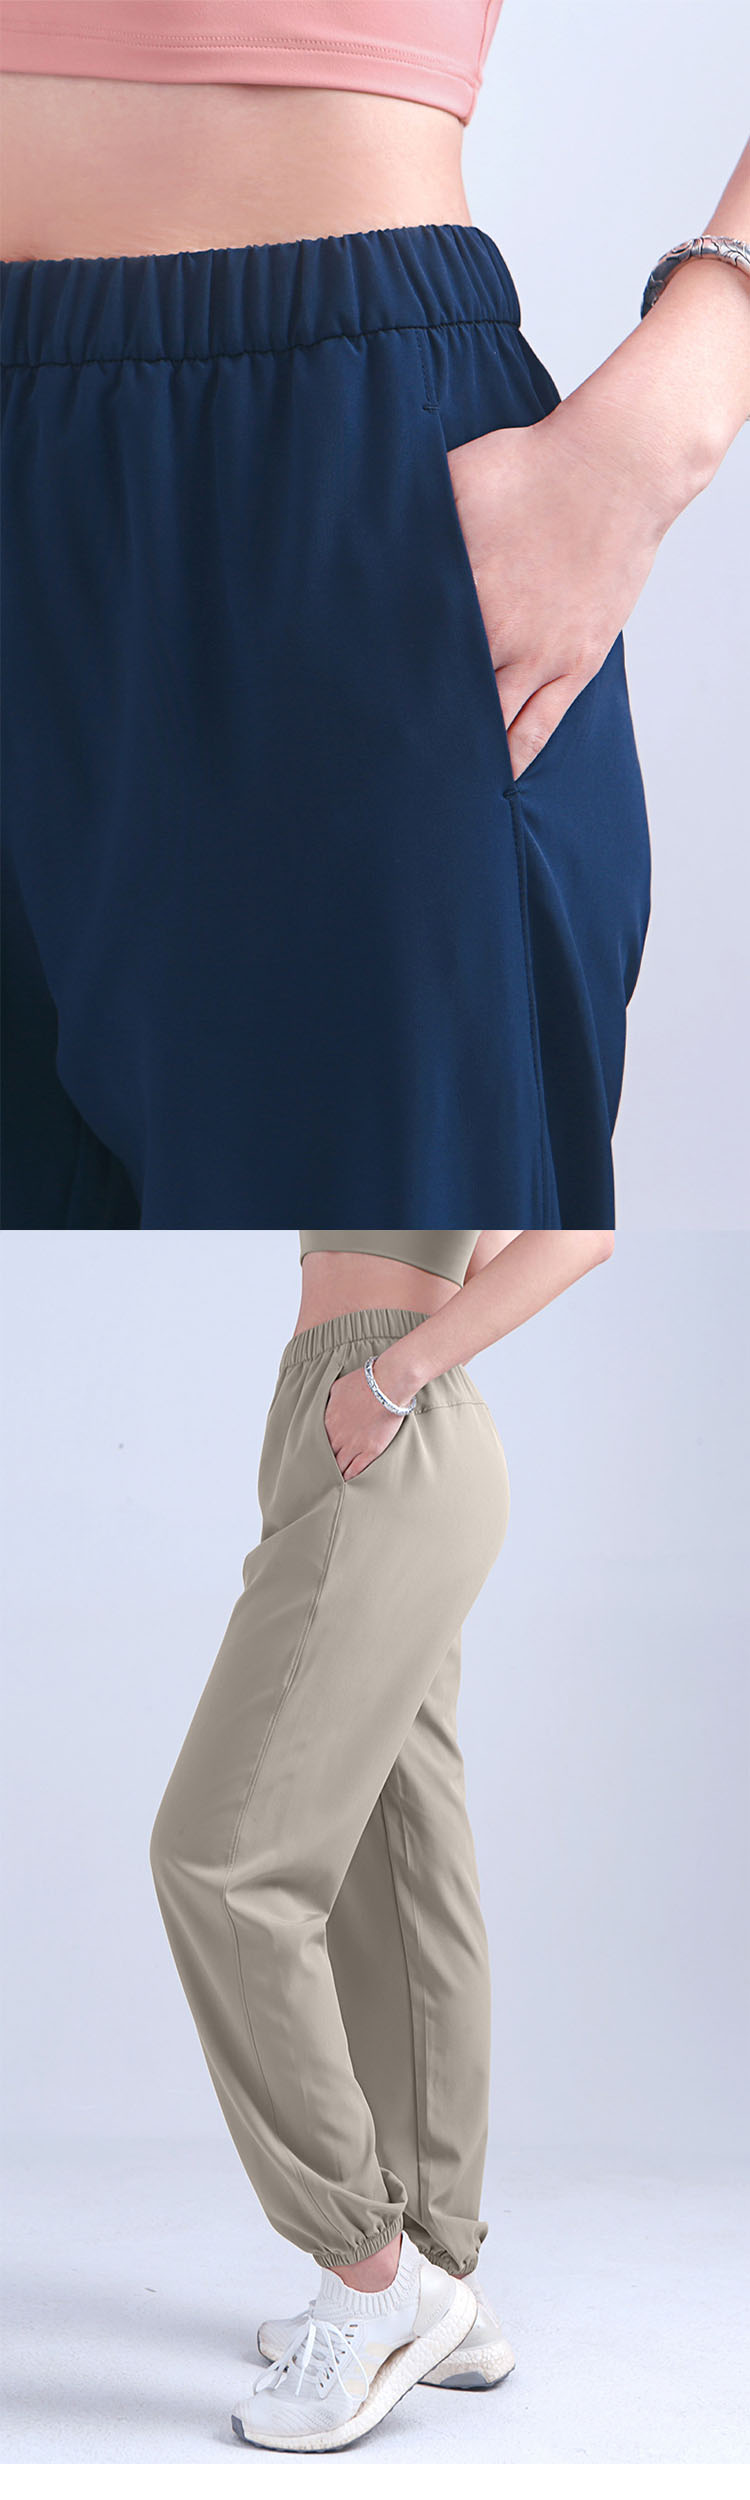 The curved hip line conforms to the curve design of the buttocks to create a sexy and beautiful buttocks.